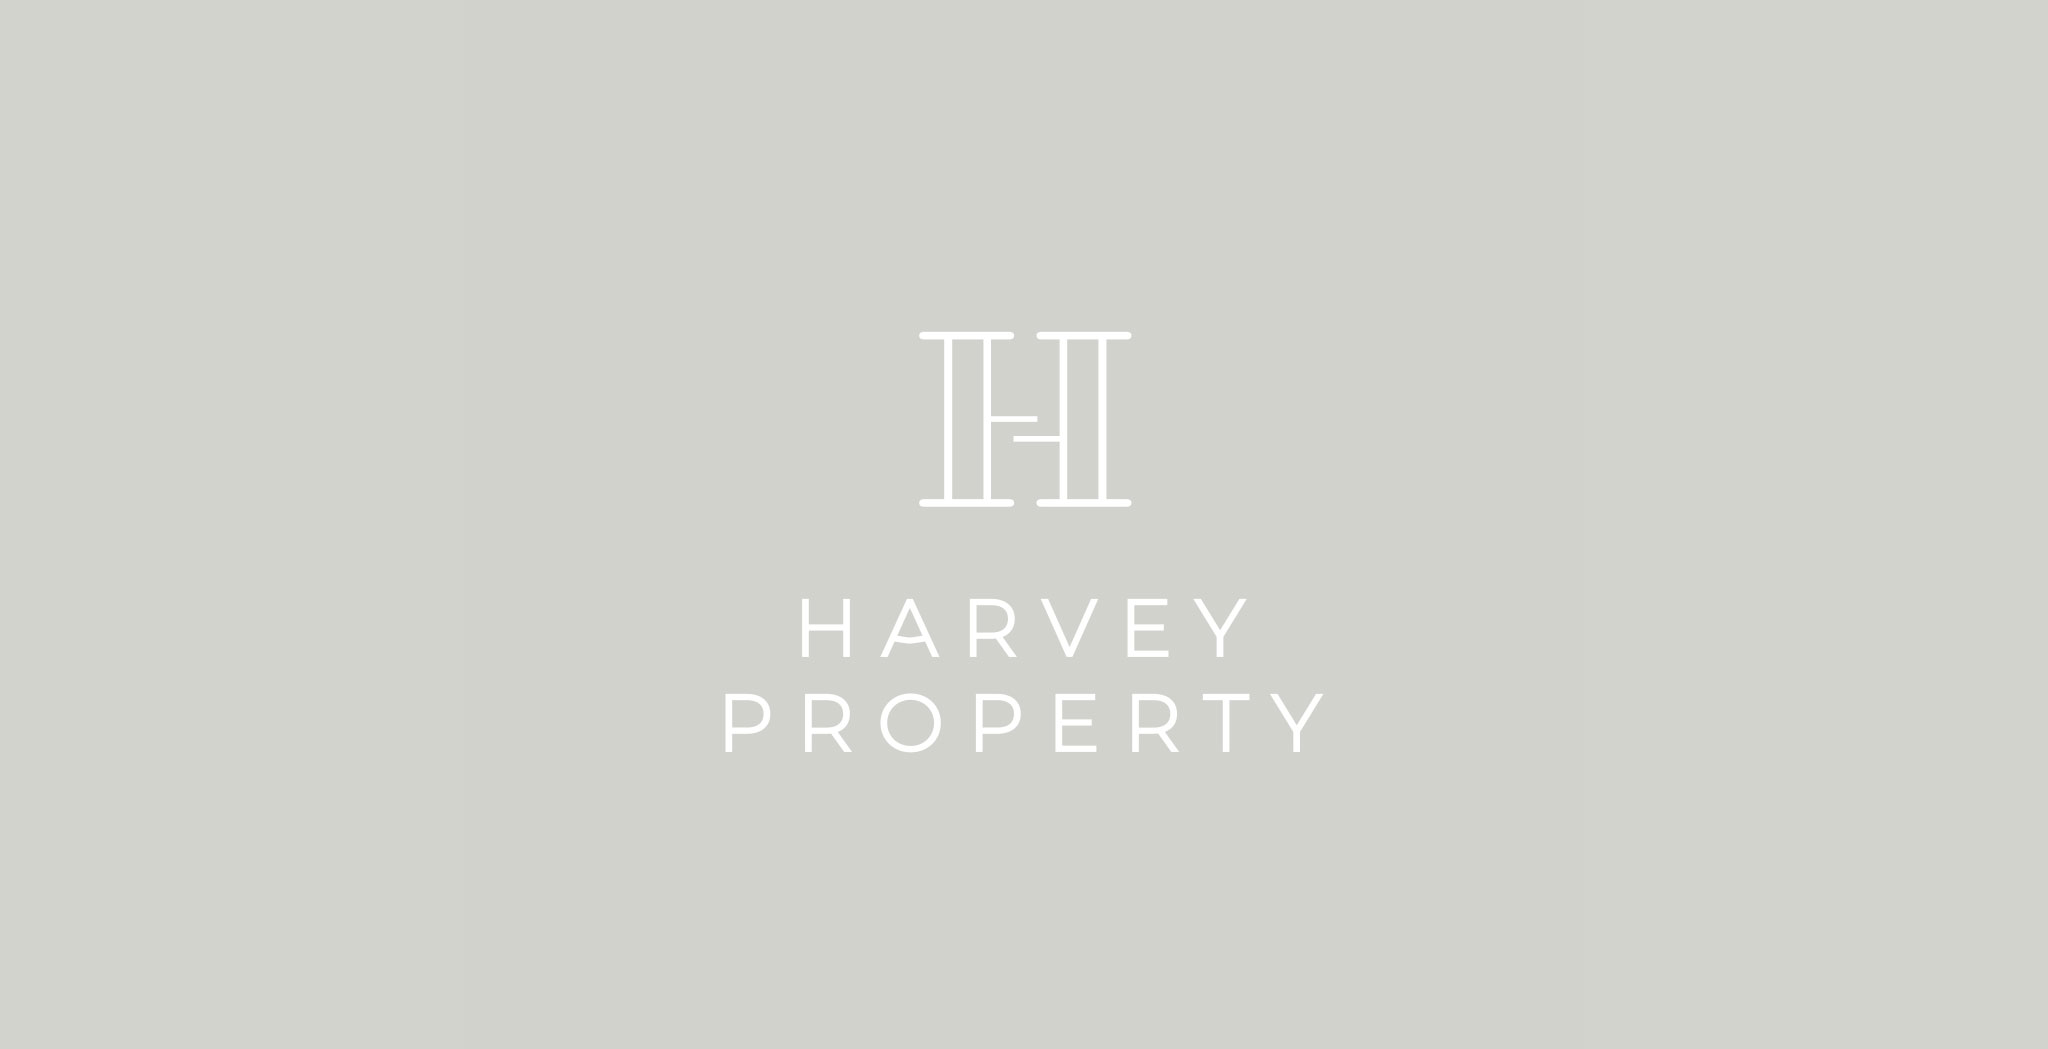 HARVEY_PROPERTY_LOGO_ONE.jpg